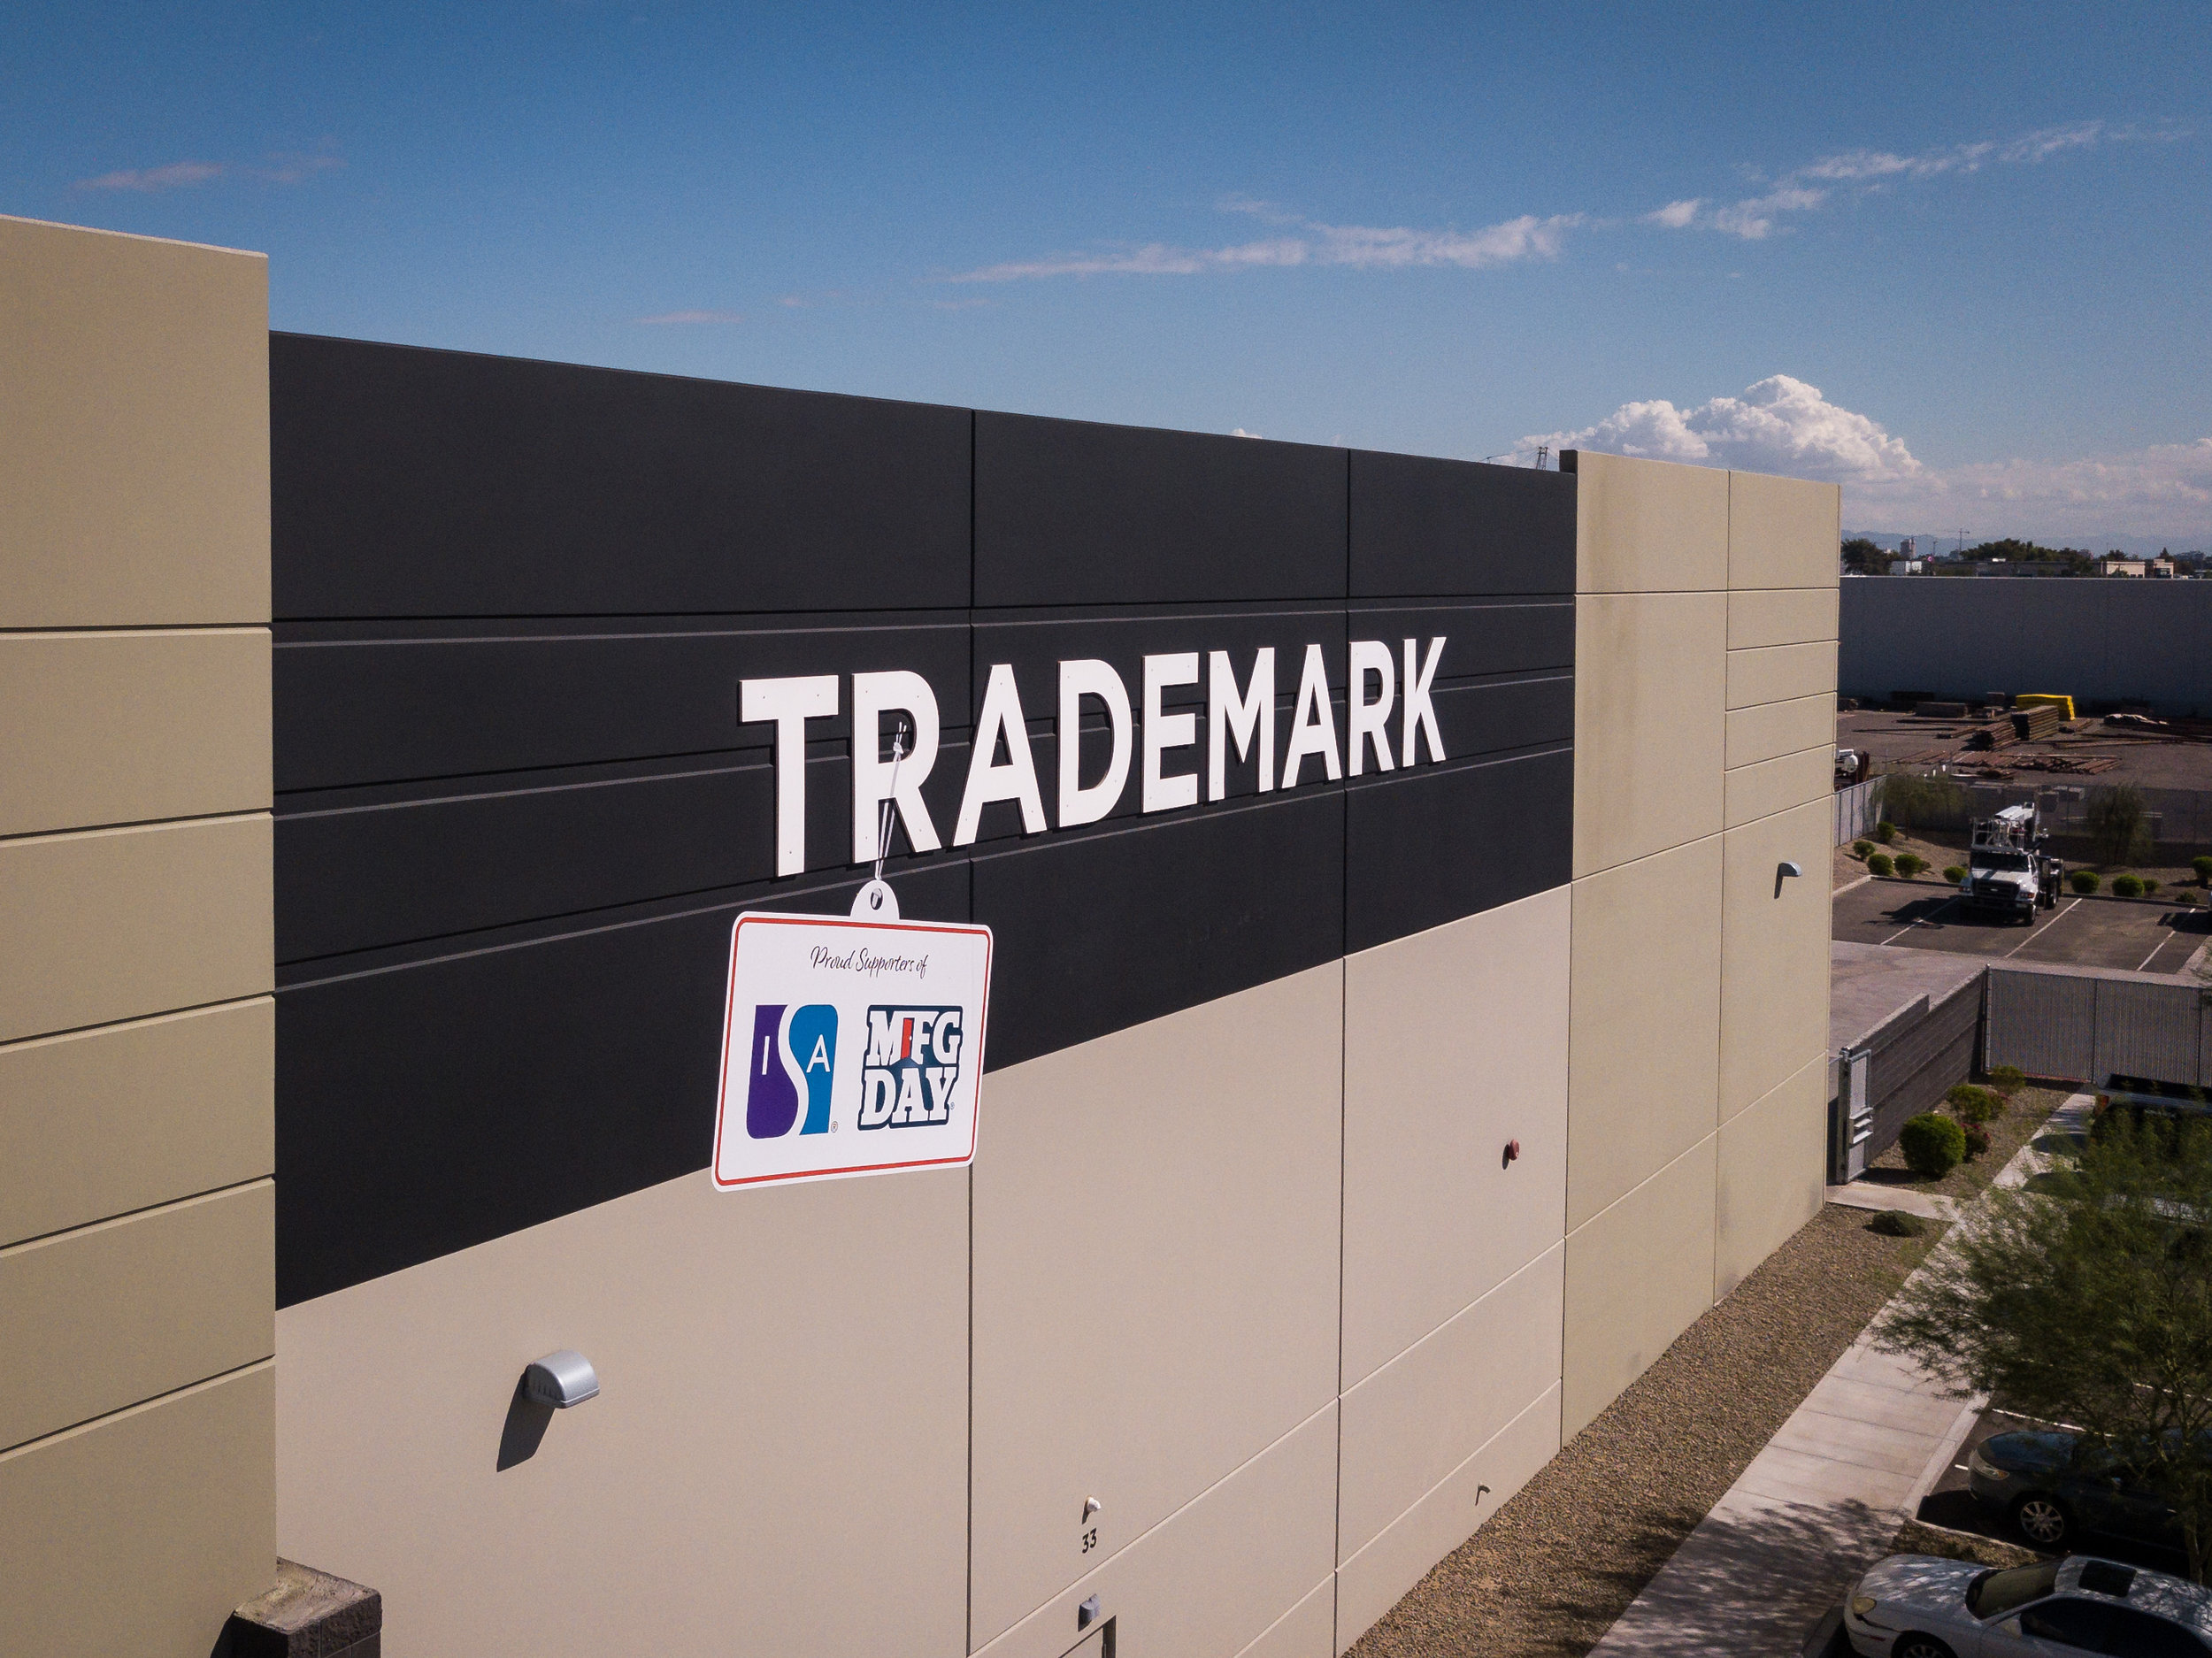 Indoor and outdoor aerial photography and video for Trademark Visual in Pheonix, Arizona